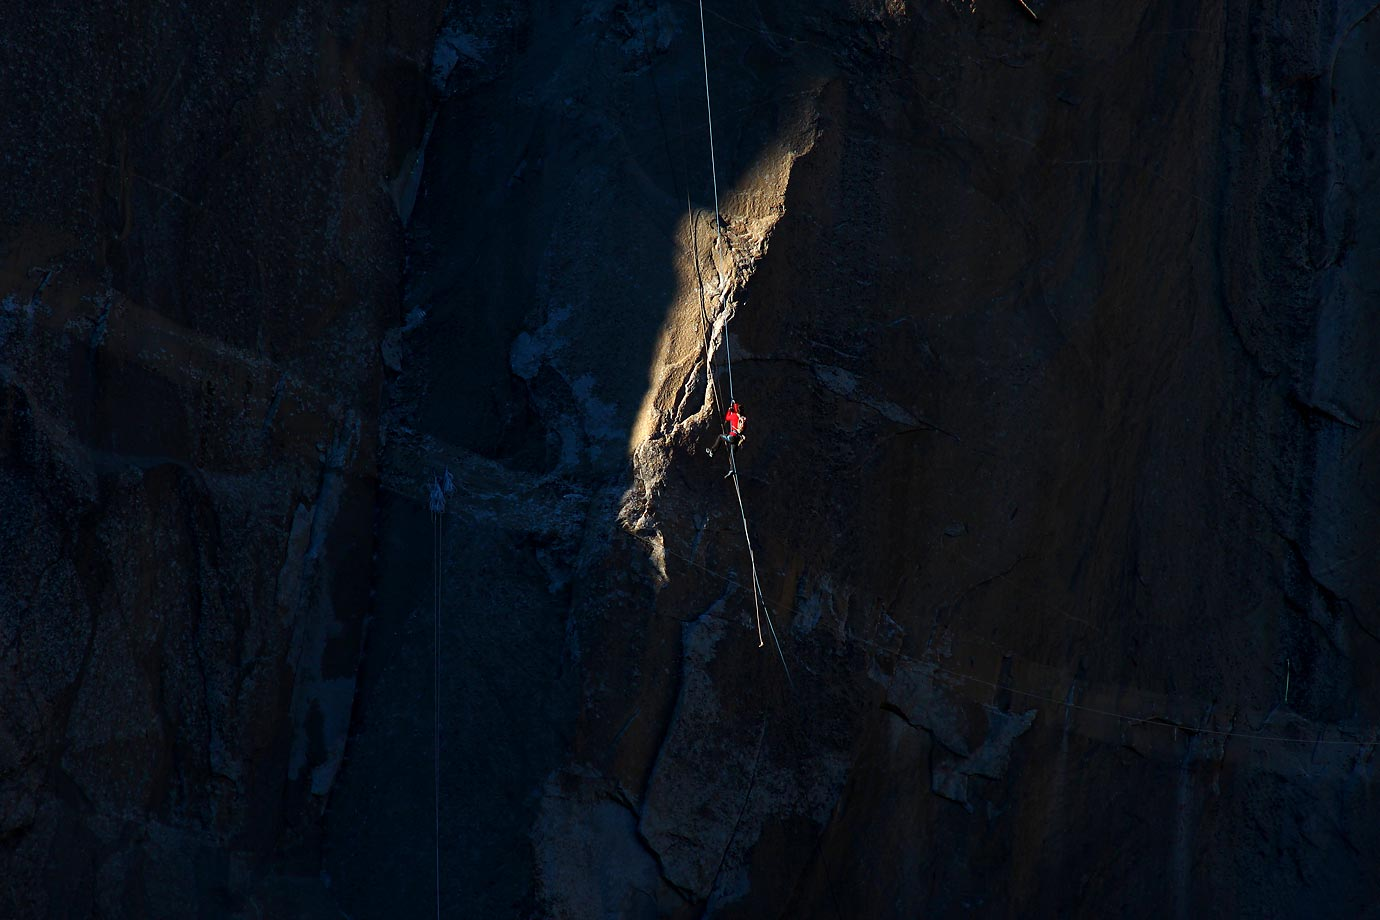 Kevin Jorgeson (in red) ascending the rope to Pitch 17.